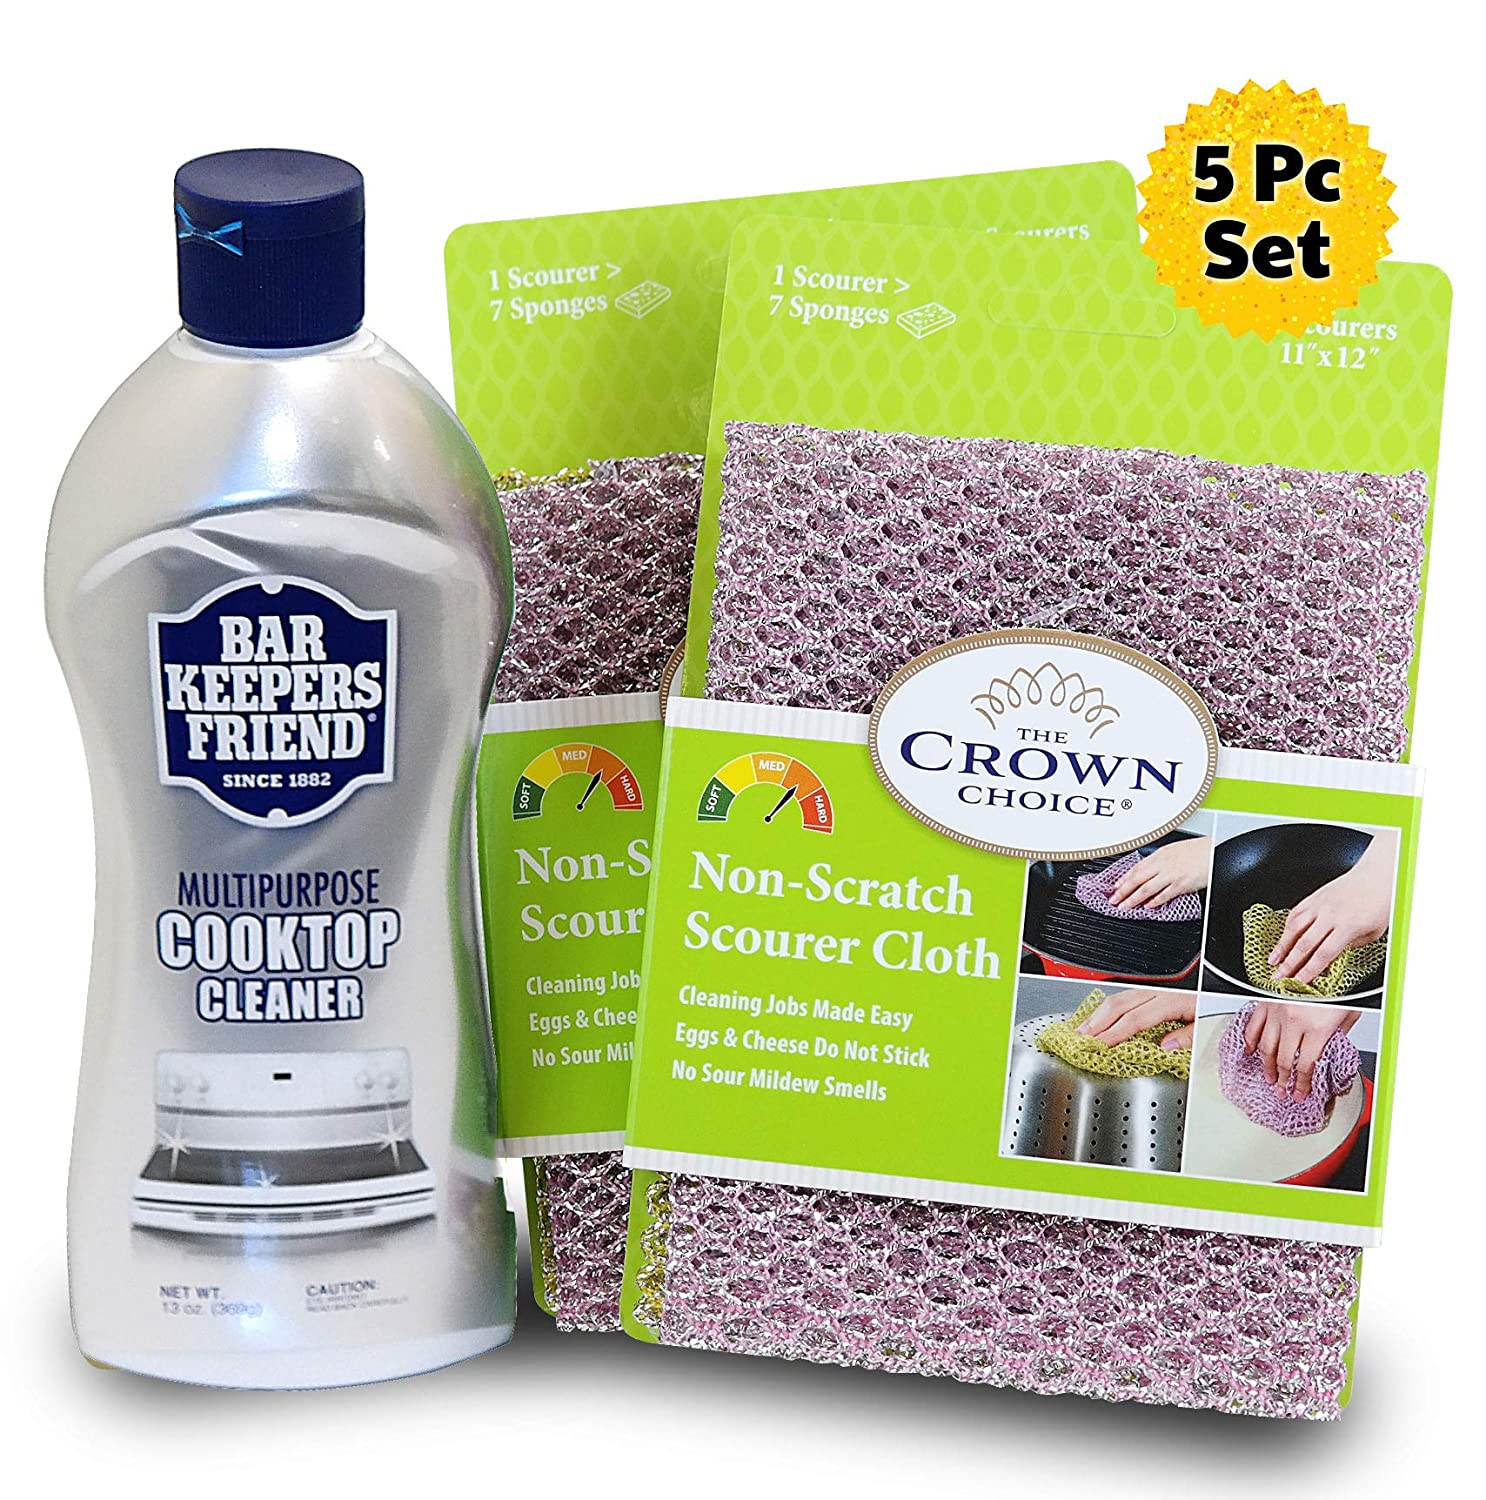 BAR KEEPERS FRIEND Cooktop Cleaner (13 OZ) and TWO Non Scratch Scouring Dishcloth | Glass Ceramic Stovetop and Oven Cleaner